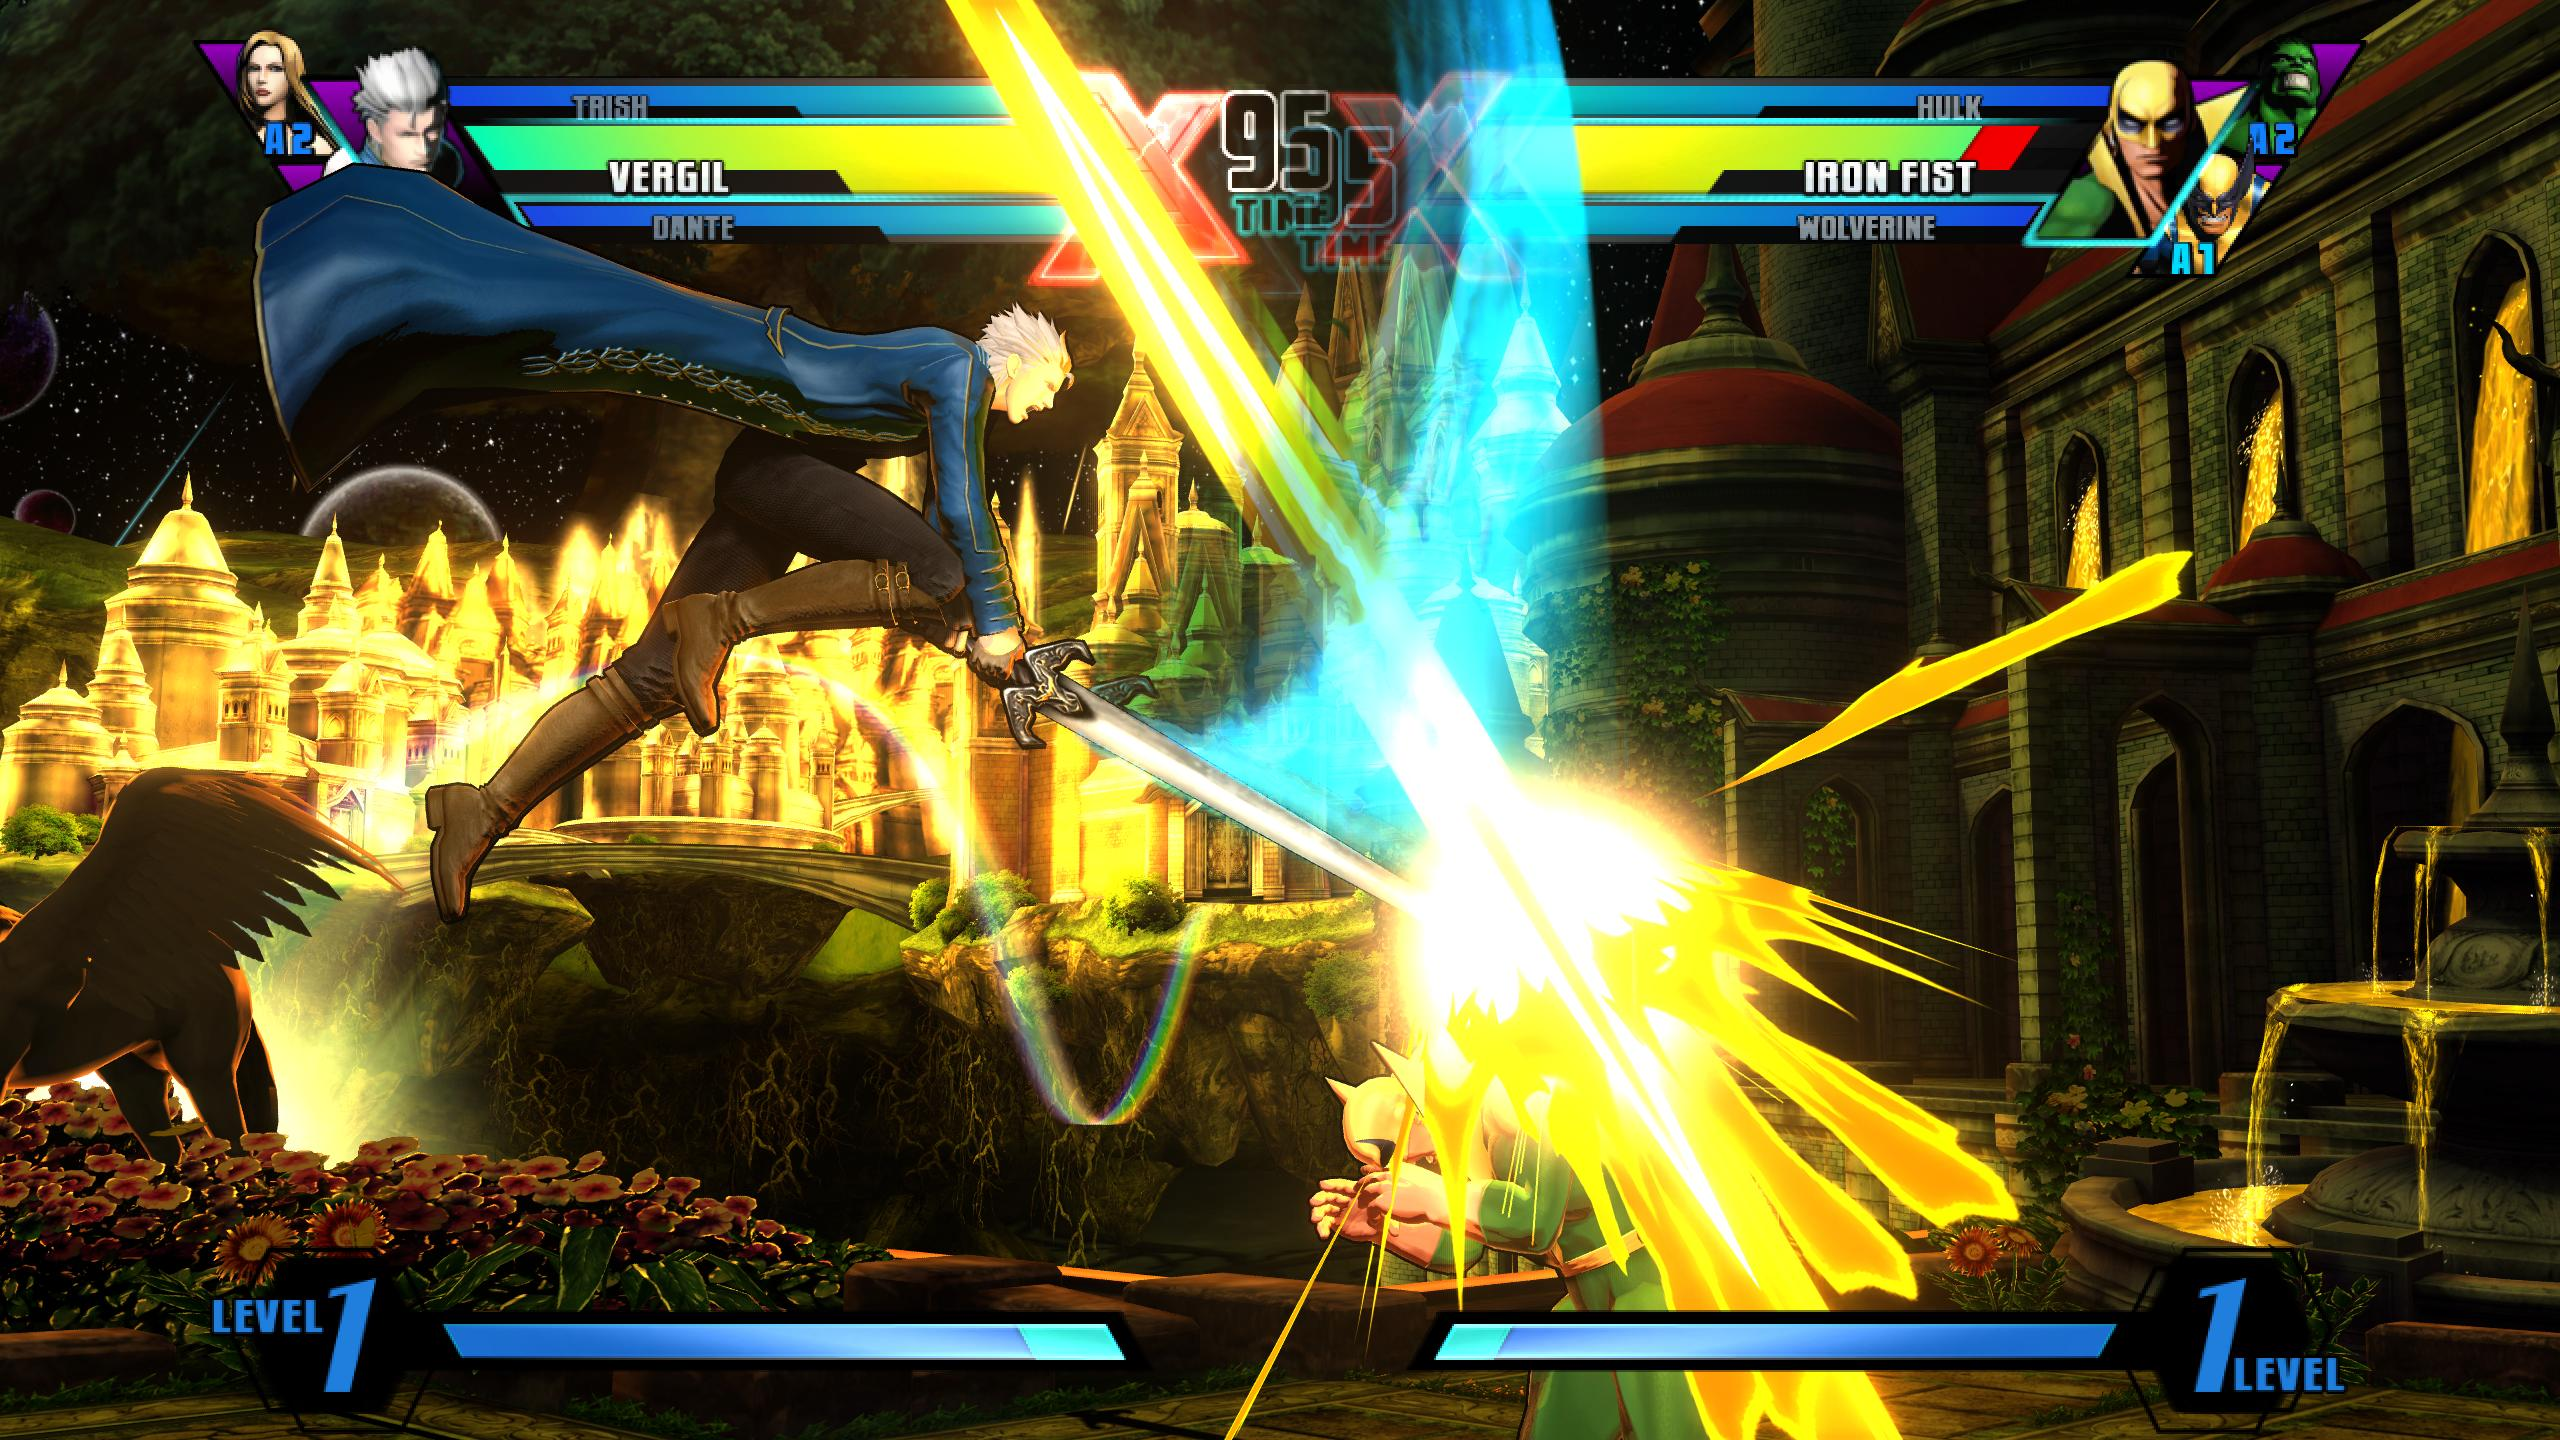 Vergil dans Ultimate Marvel vs. Capcom 3 6151134756_934a3de742_o